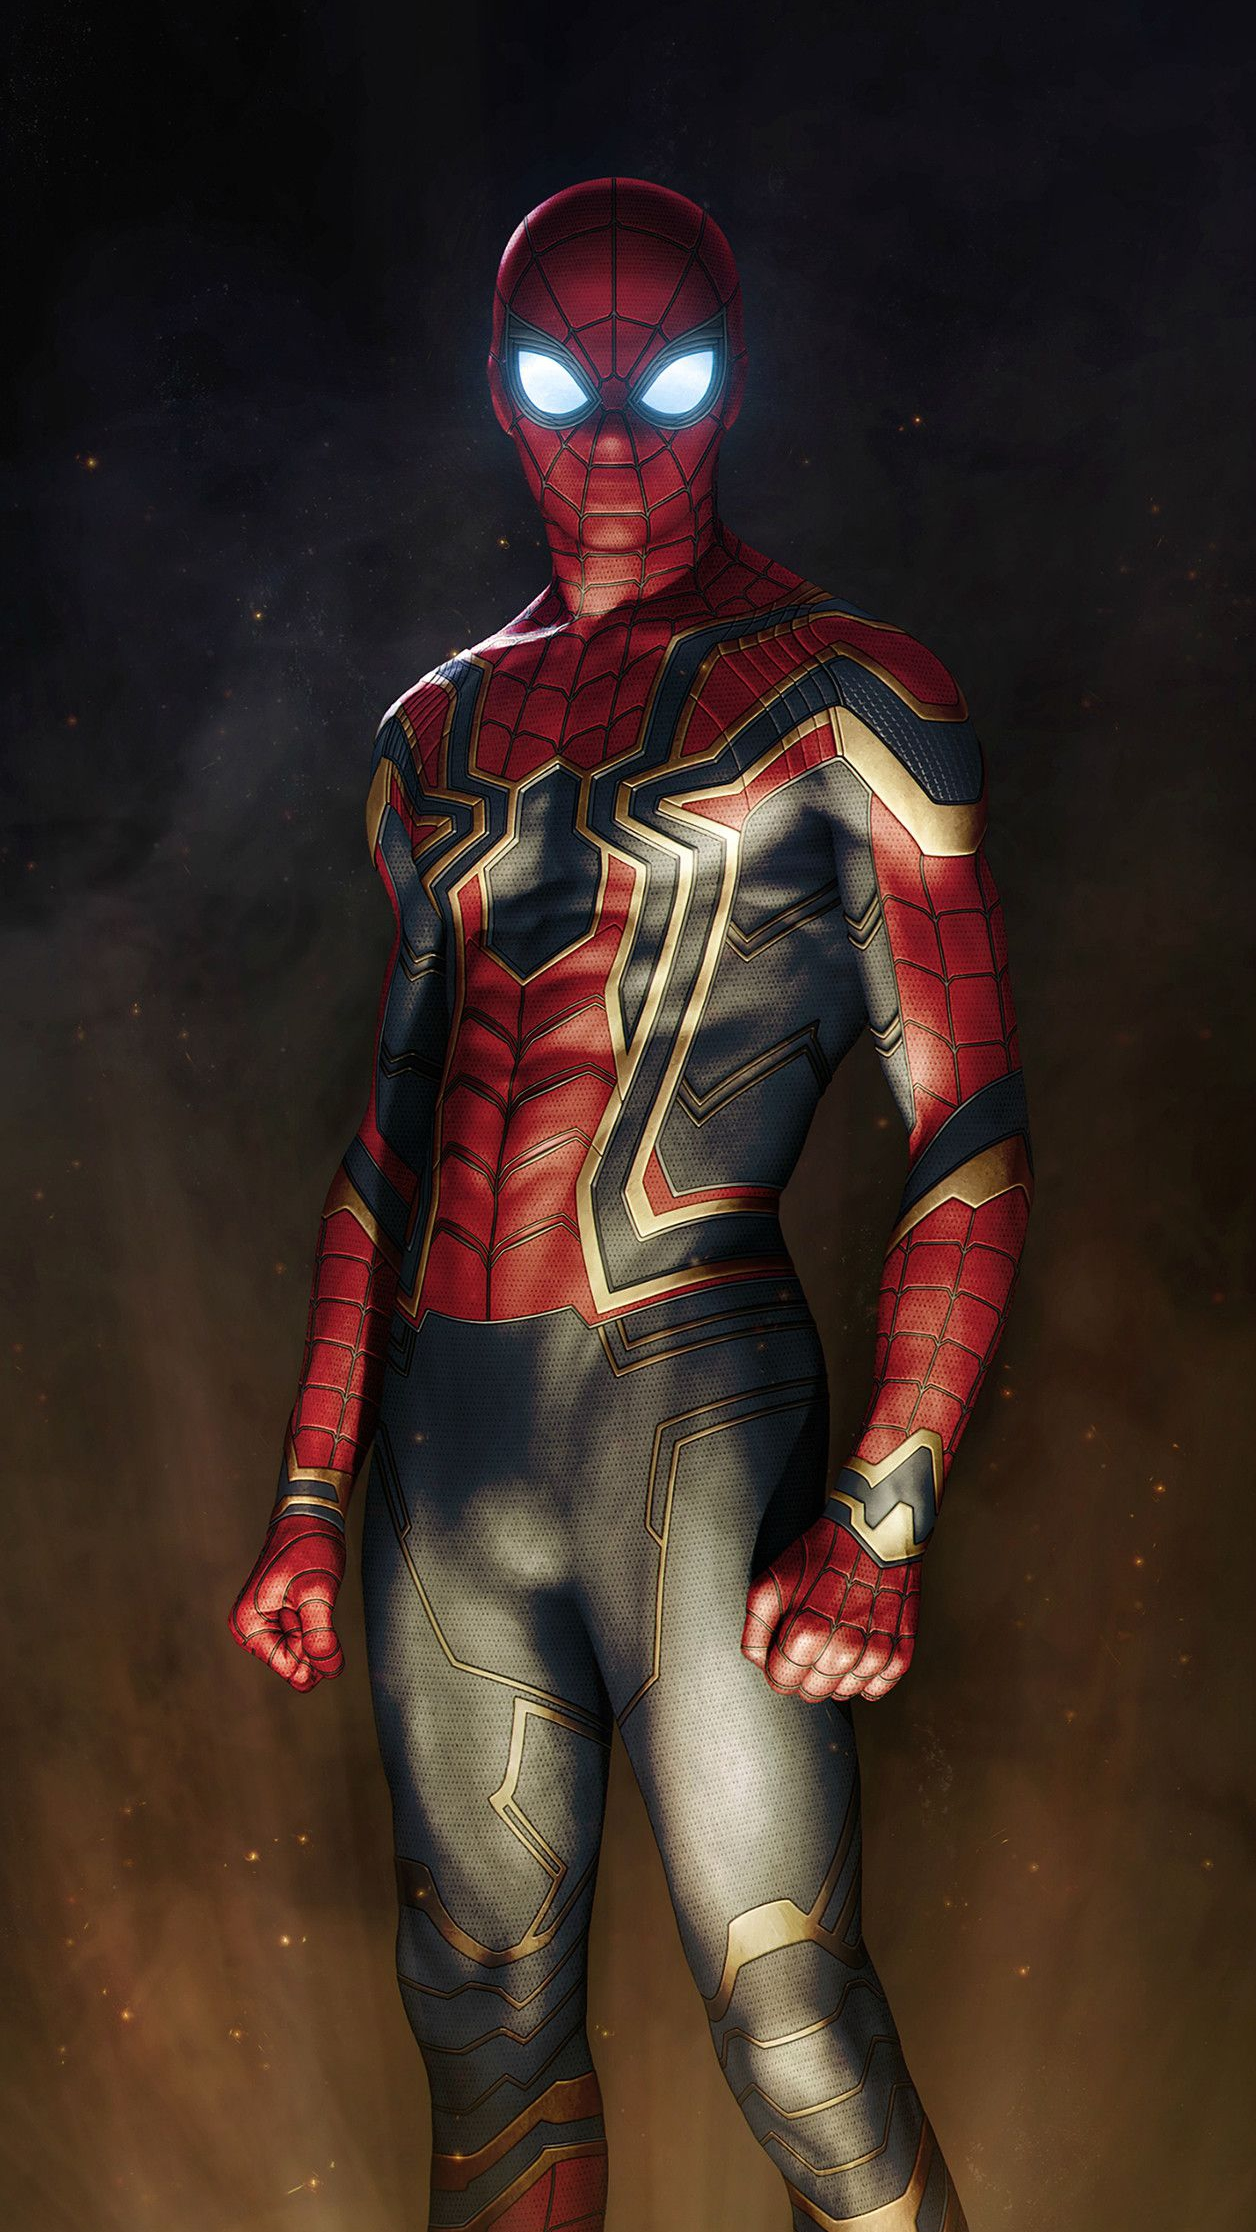 Iron spiderman suit avengers iphone wallpaper iphone - Iron man spiderman wallpaper ...